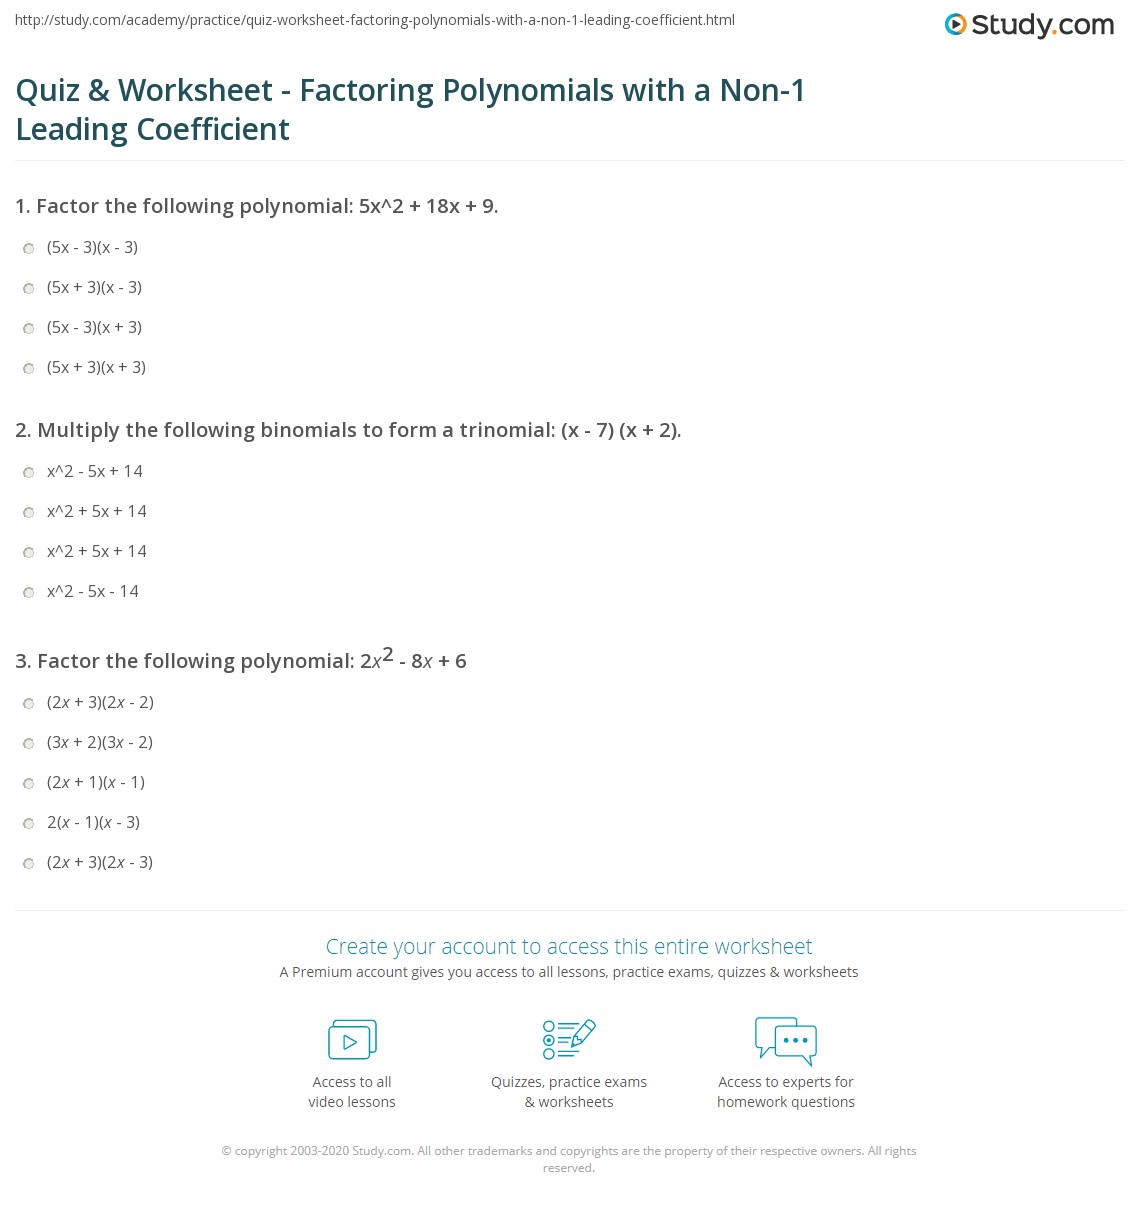 Quiz Worksheet Factoring Polynomials with a Non1 Leading – Factoring Polynomials Worksheet Answers